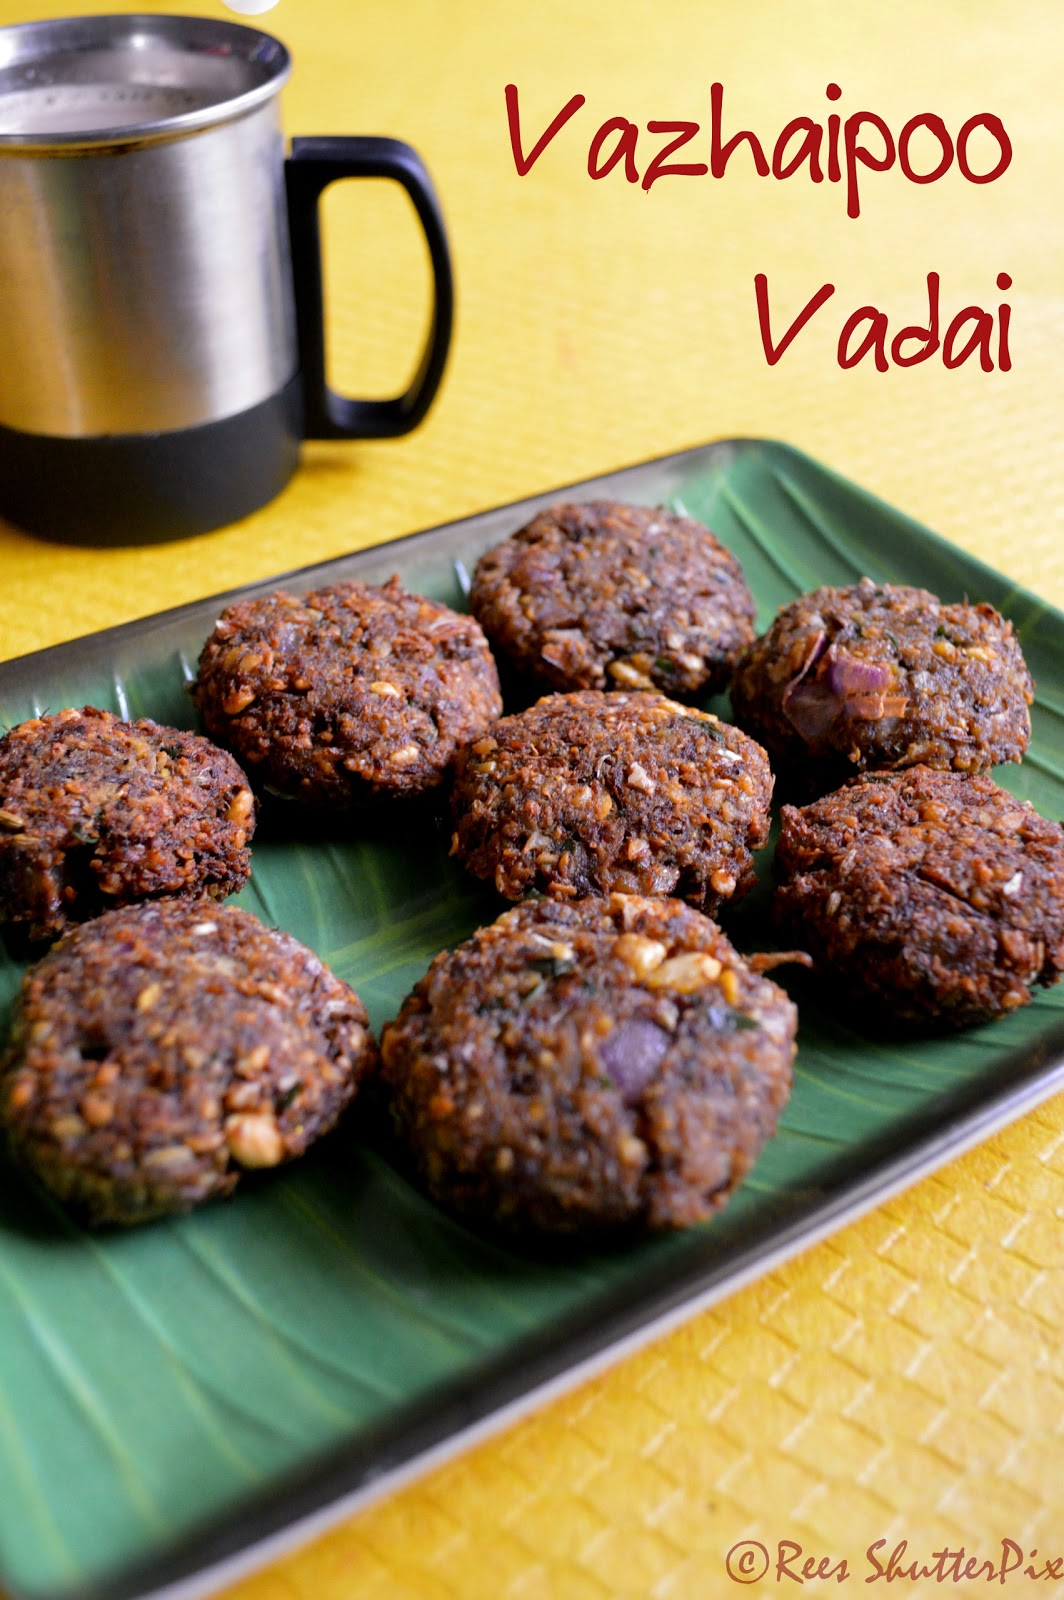 vazhaipoo vada recipe, easy vada recipe, Vada Recipes, step by step picture recipe, how to make vazhaipoo vada, easy vazhaipoo vada recipe,